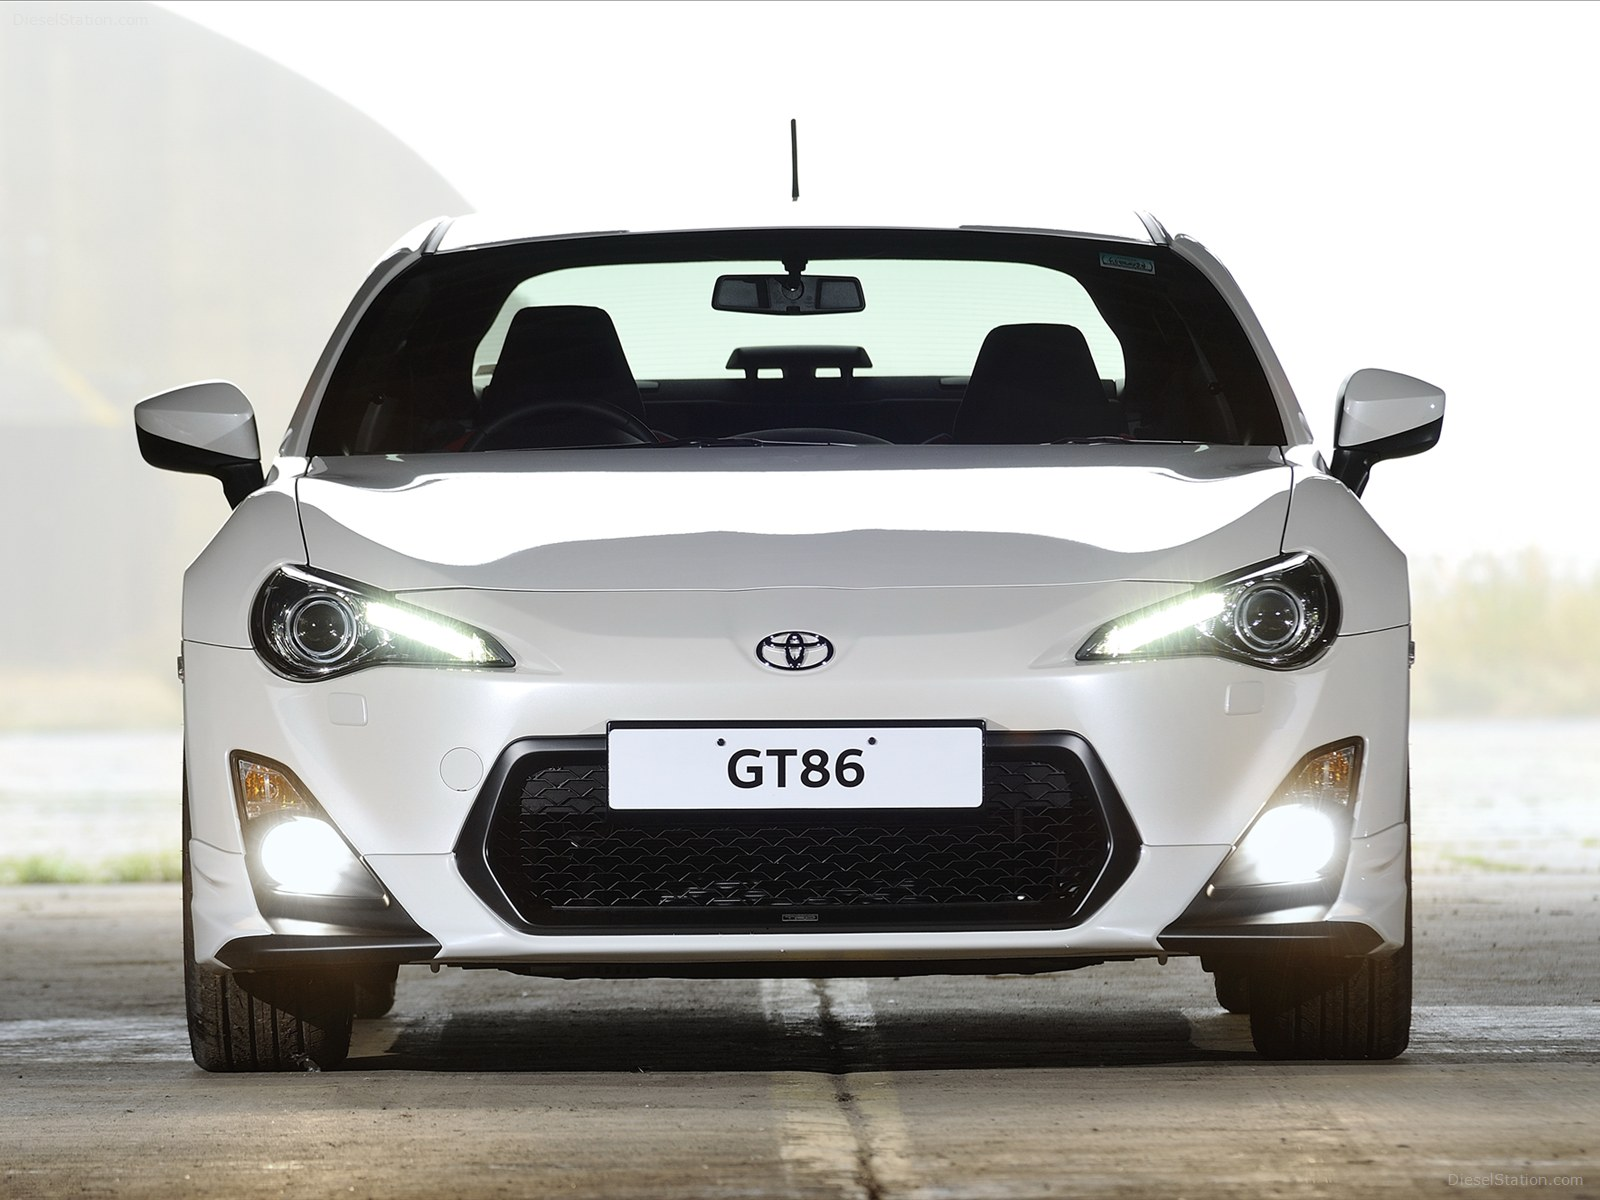 Toyota GT86 TRD 2014 Exotic Car Wallpapers 02 of 12 1600x1200